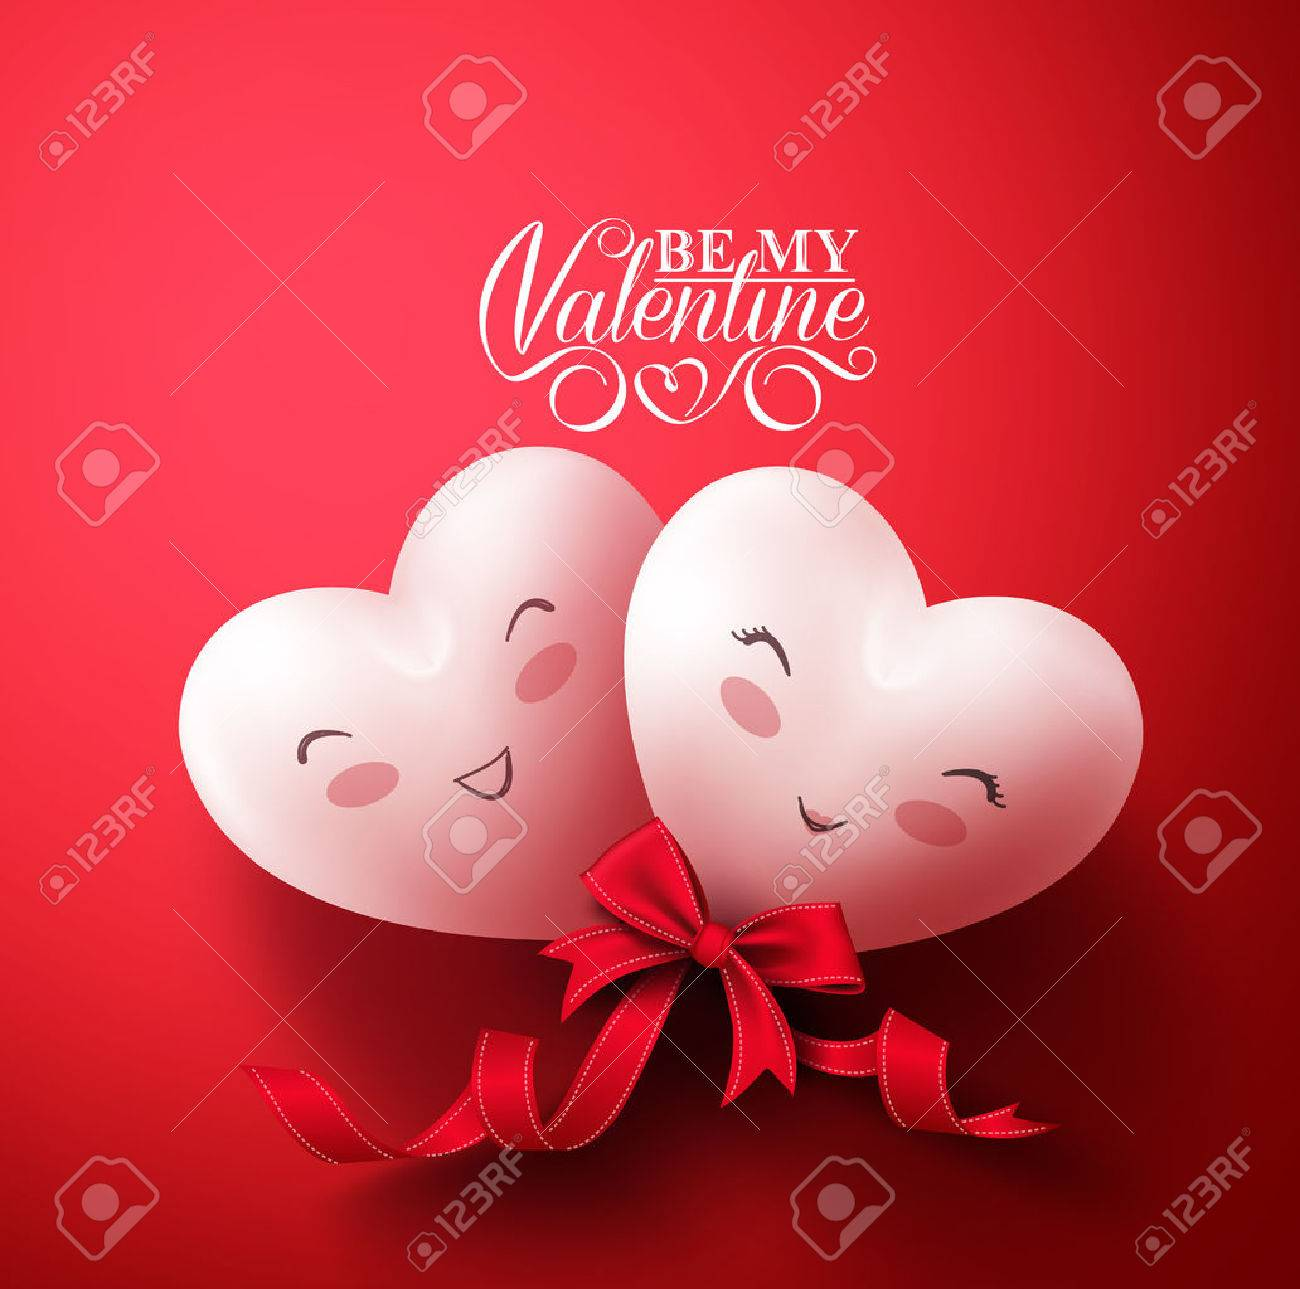 Sweet Smiling Hearts of Happy Lovers for Happy Valentines Day Greetings in Red Background with Ribbon. Vector Illustration - 50818482